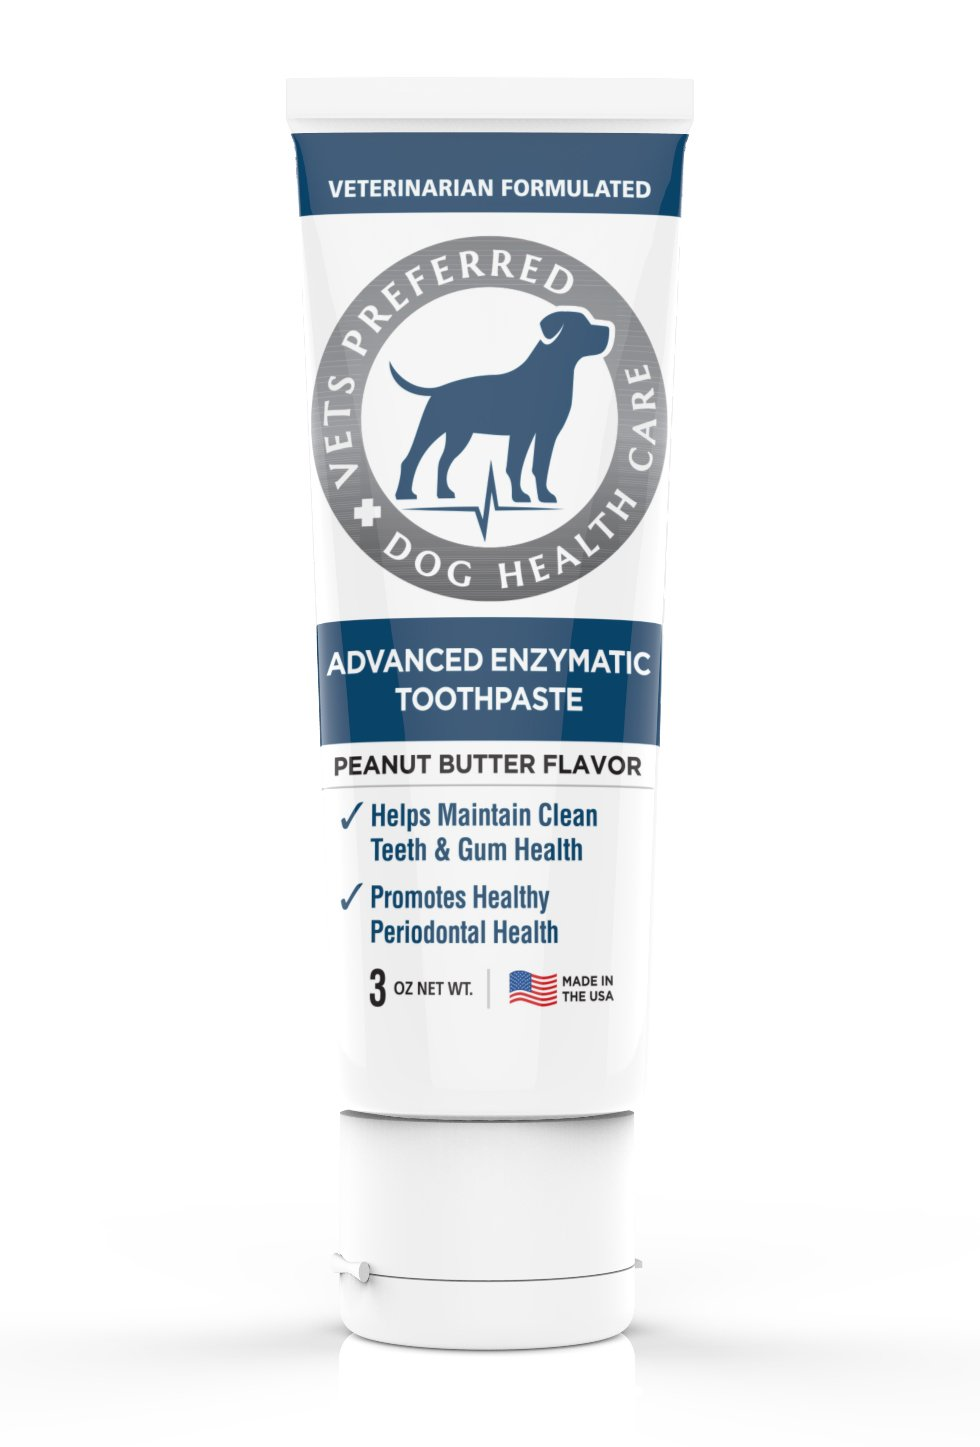 Vets Preferred Advanced Enzymatic Toothpaste for Dogs - Veterinarian-Grade, Safe and Natural Dog Toothpaste - Freshens Dog Breath, Fights Plaque and Reduces Tartar, Peanut Butter Flavor by Vets Preferred